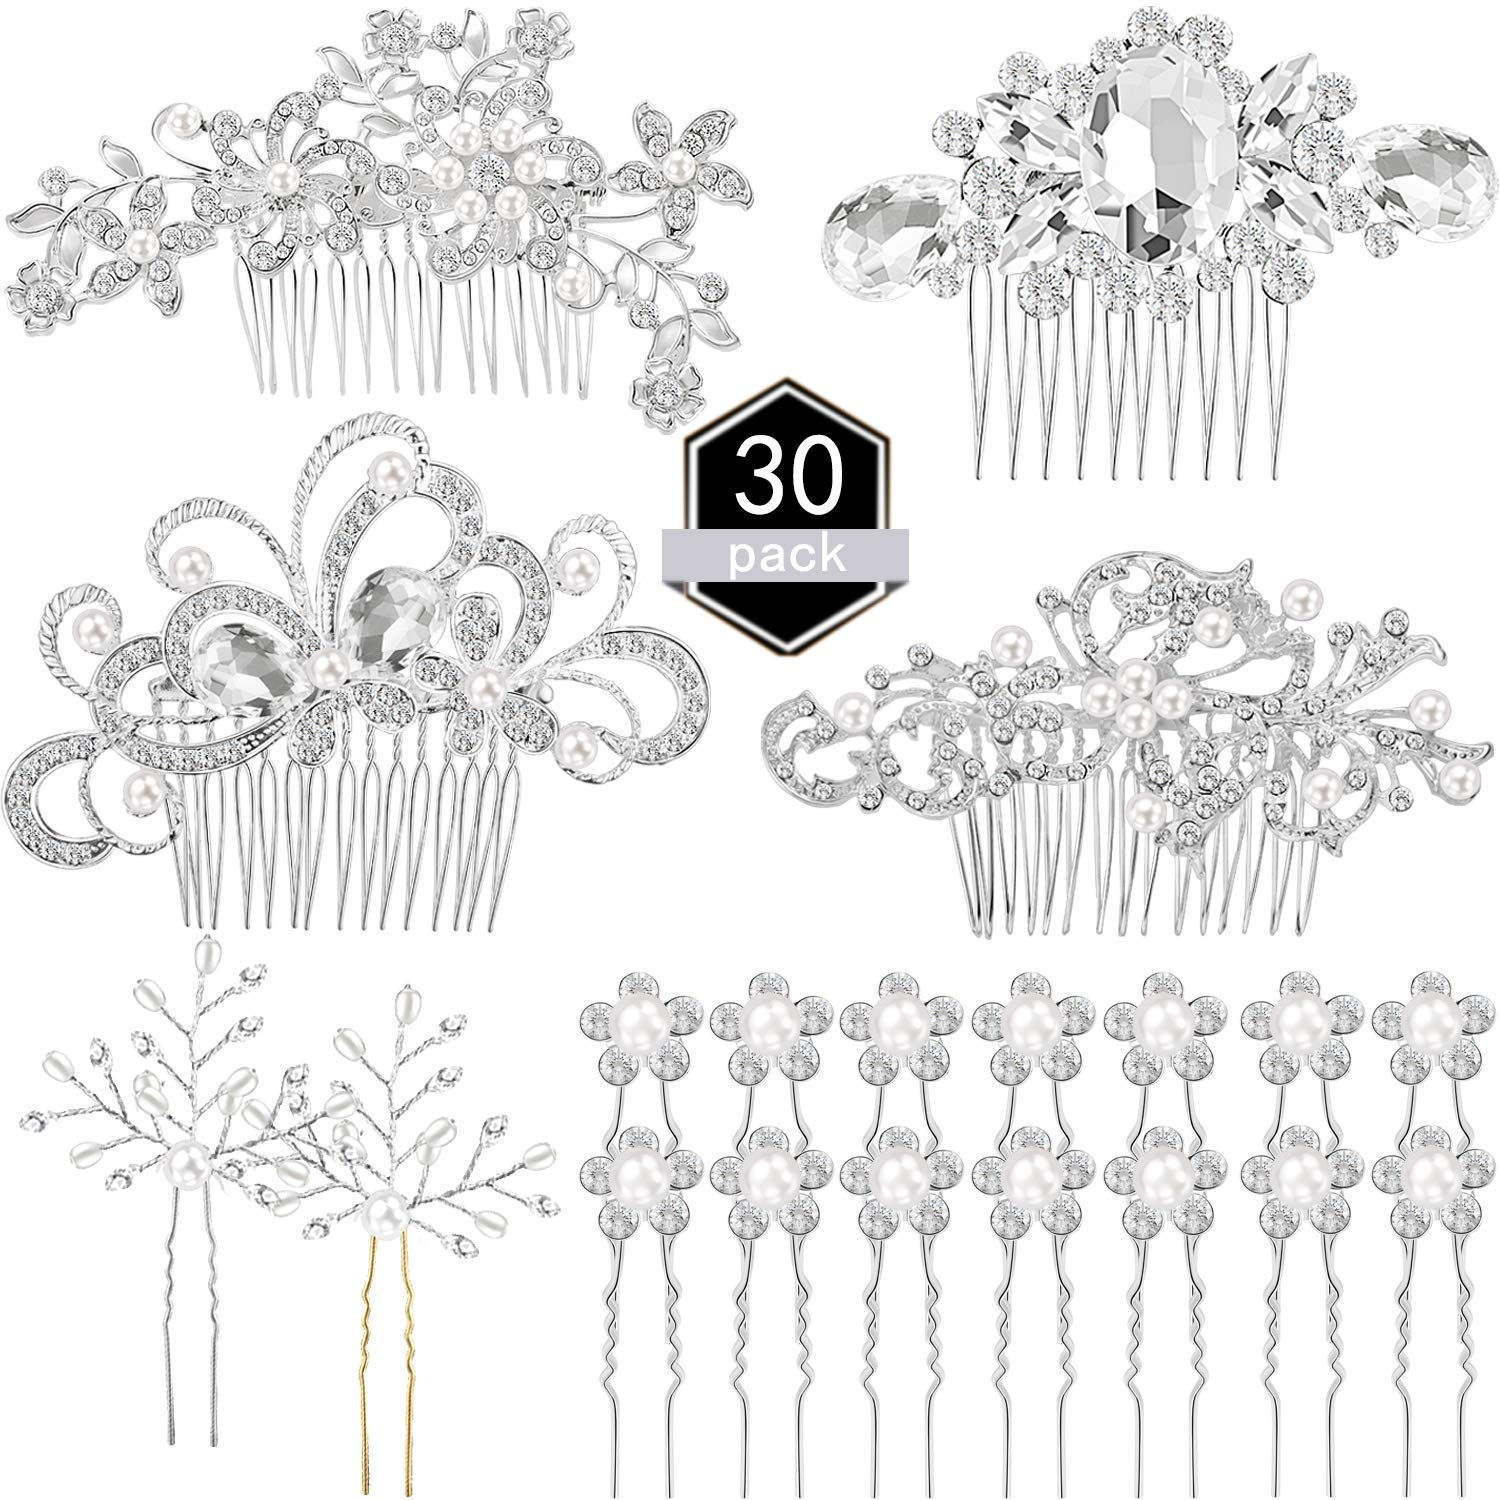 30 Pieces Wedding Bridal Hair Accessories Set 4 Pieces Rhinestone Wedding Hair Side Combs, 2 Pieces U-shaped Silvery Hair Clips, 24 Pieces Imitation Pearl Hairpins by Zonon